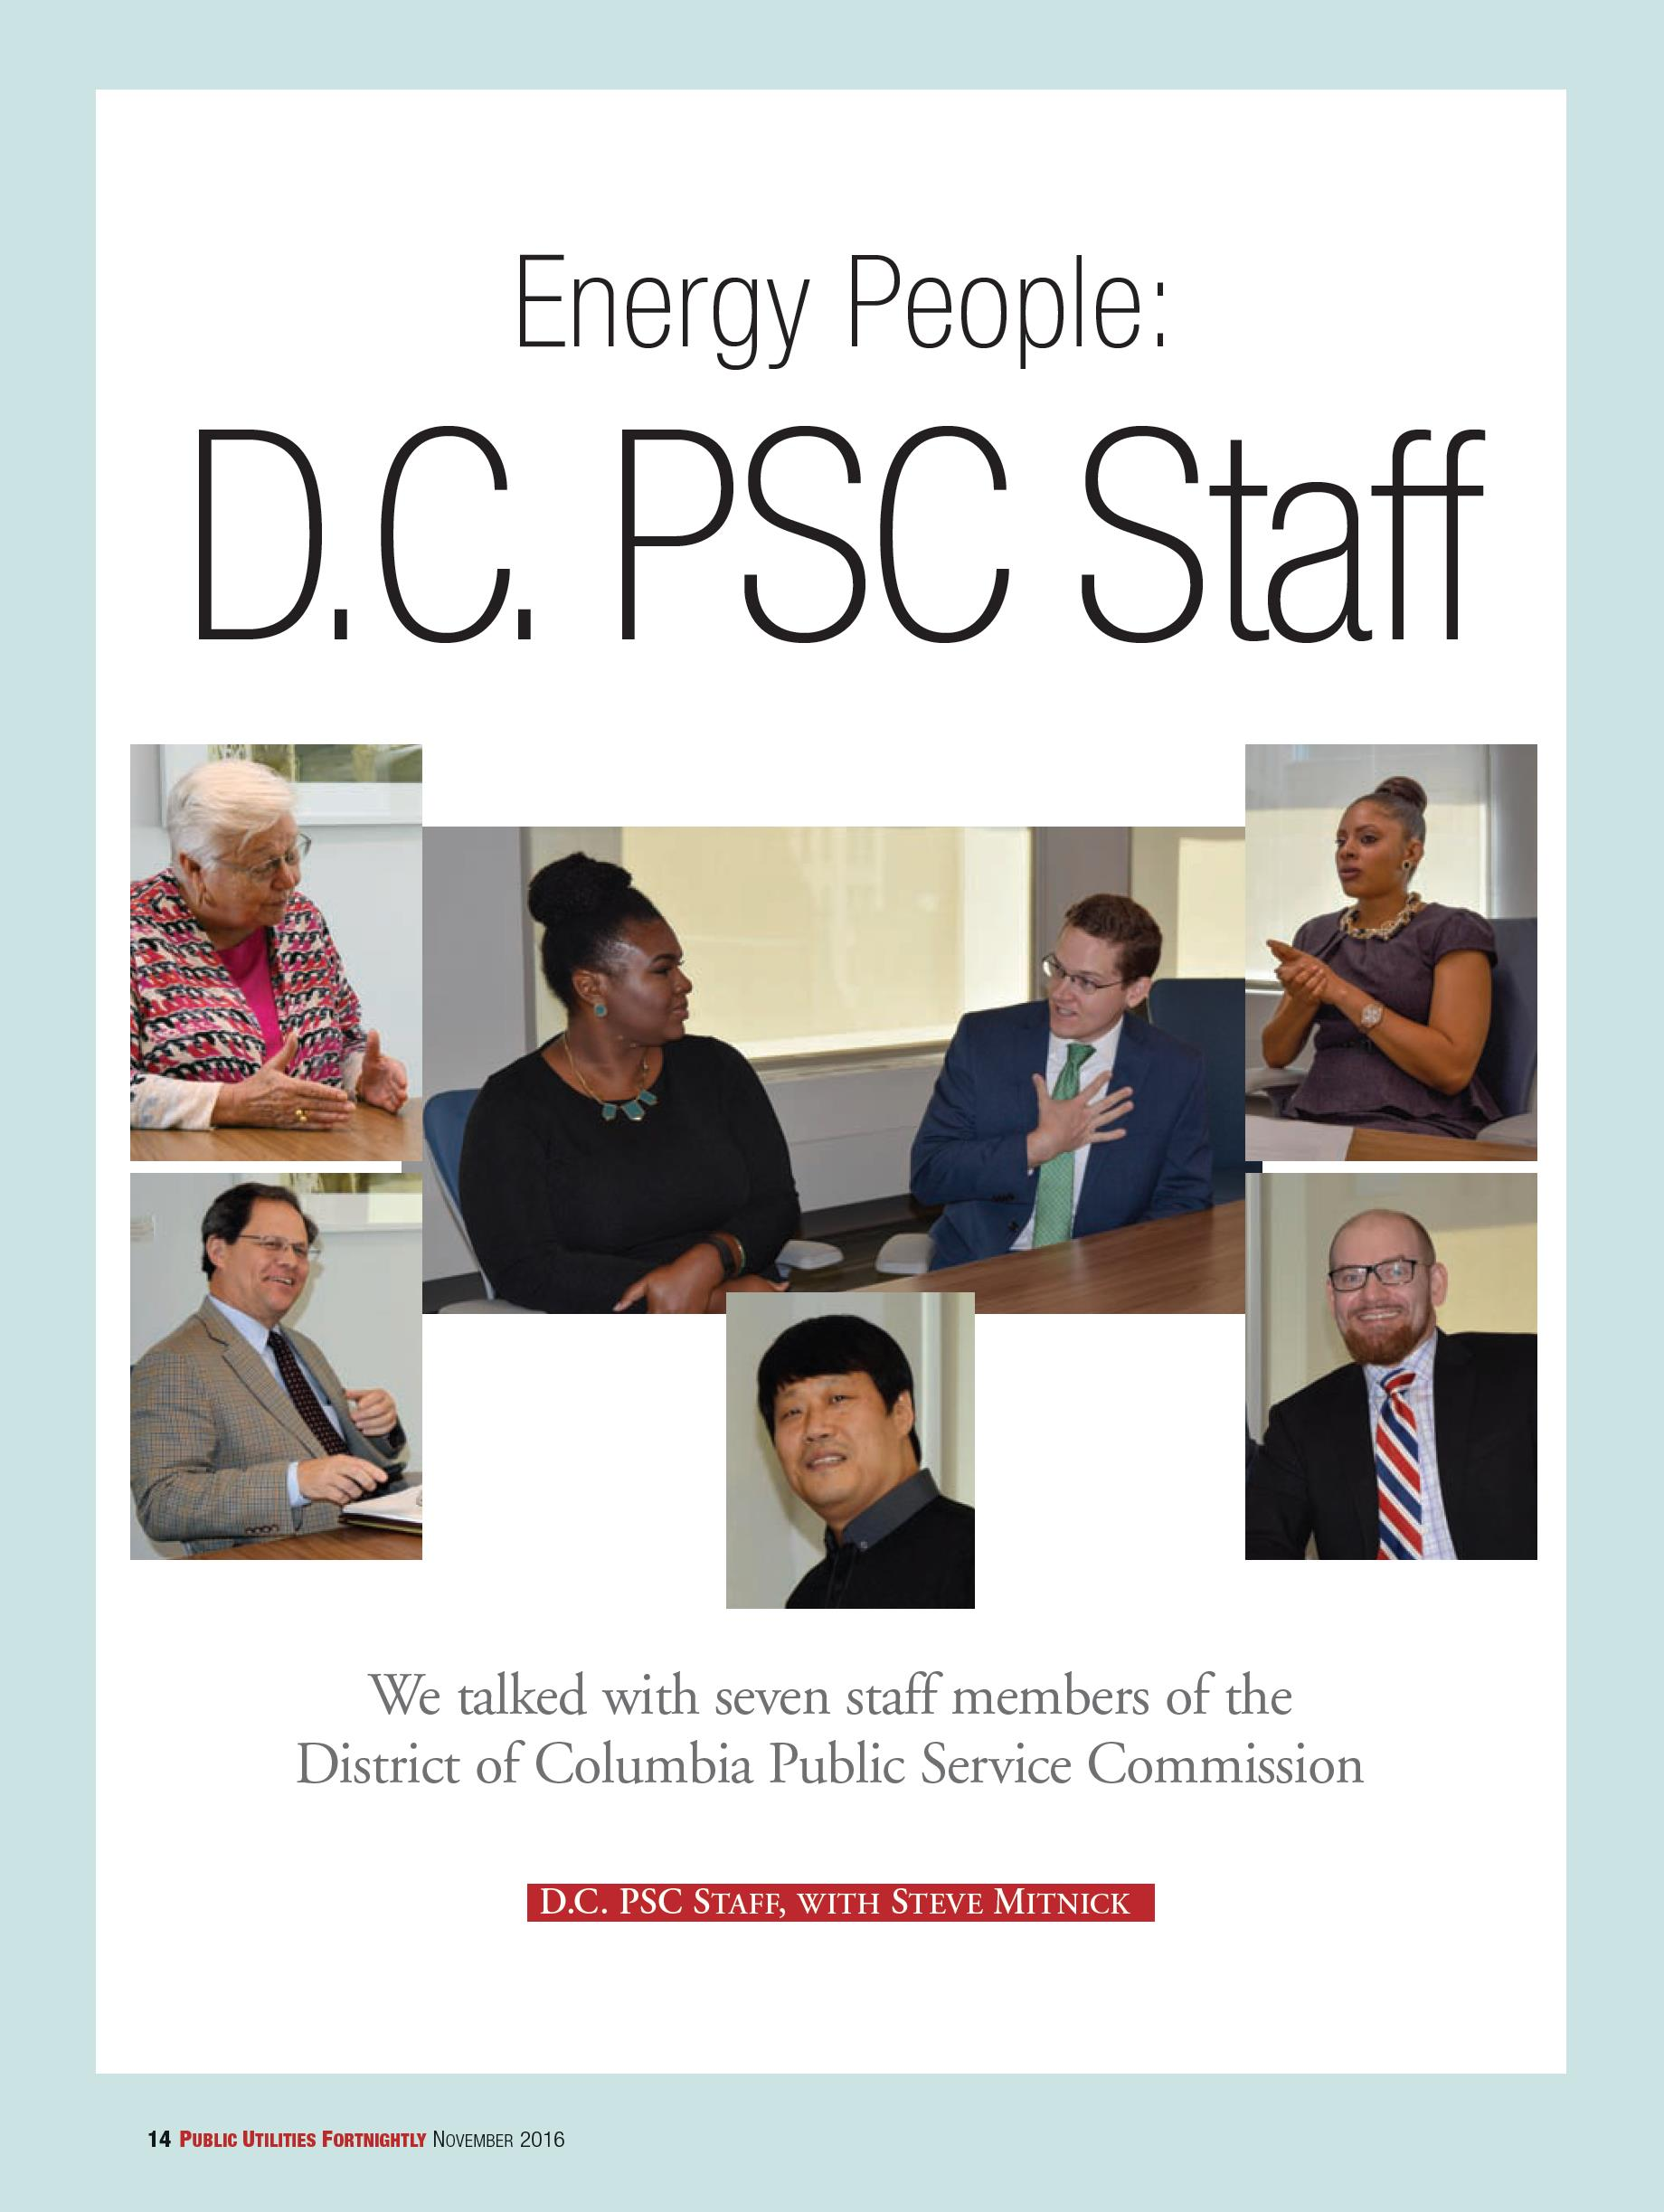 DCPSC Staff featured in the November issue of Public Utilities Fortnightly